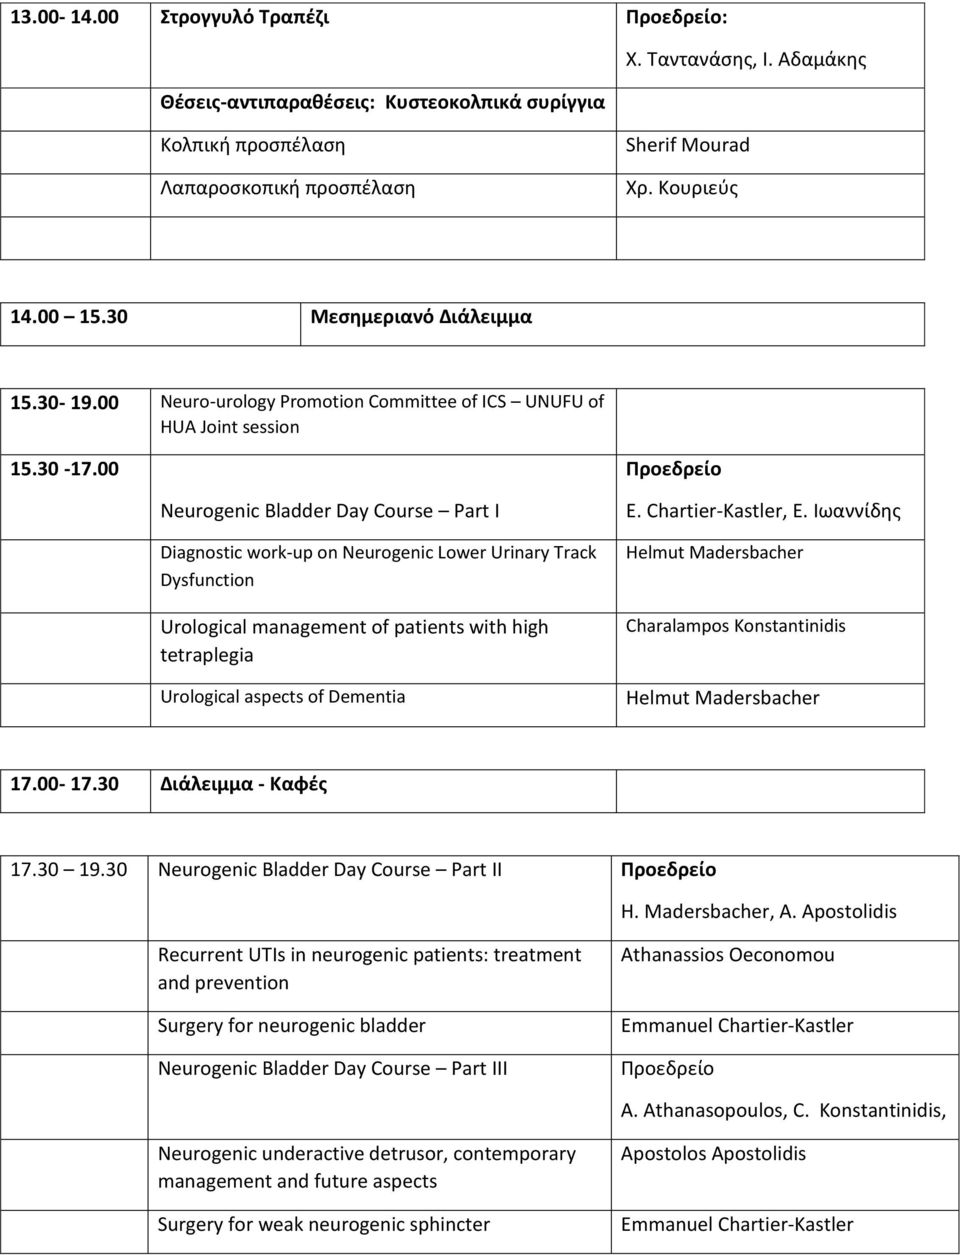 00 Προεδρείο Neurogenic Bladder Day Course Part I Diagnostic work-up on Neurogenic Lower Urinary Track Dysfunction Urological management of patients with high tetraplegia Urological aspects of